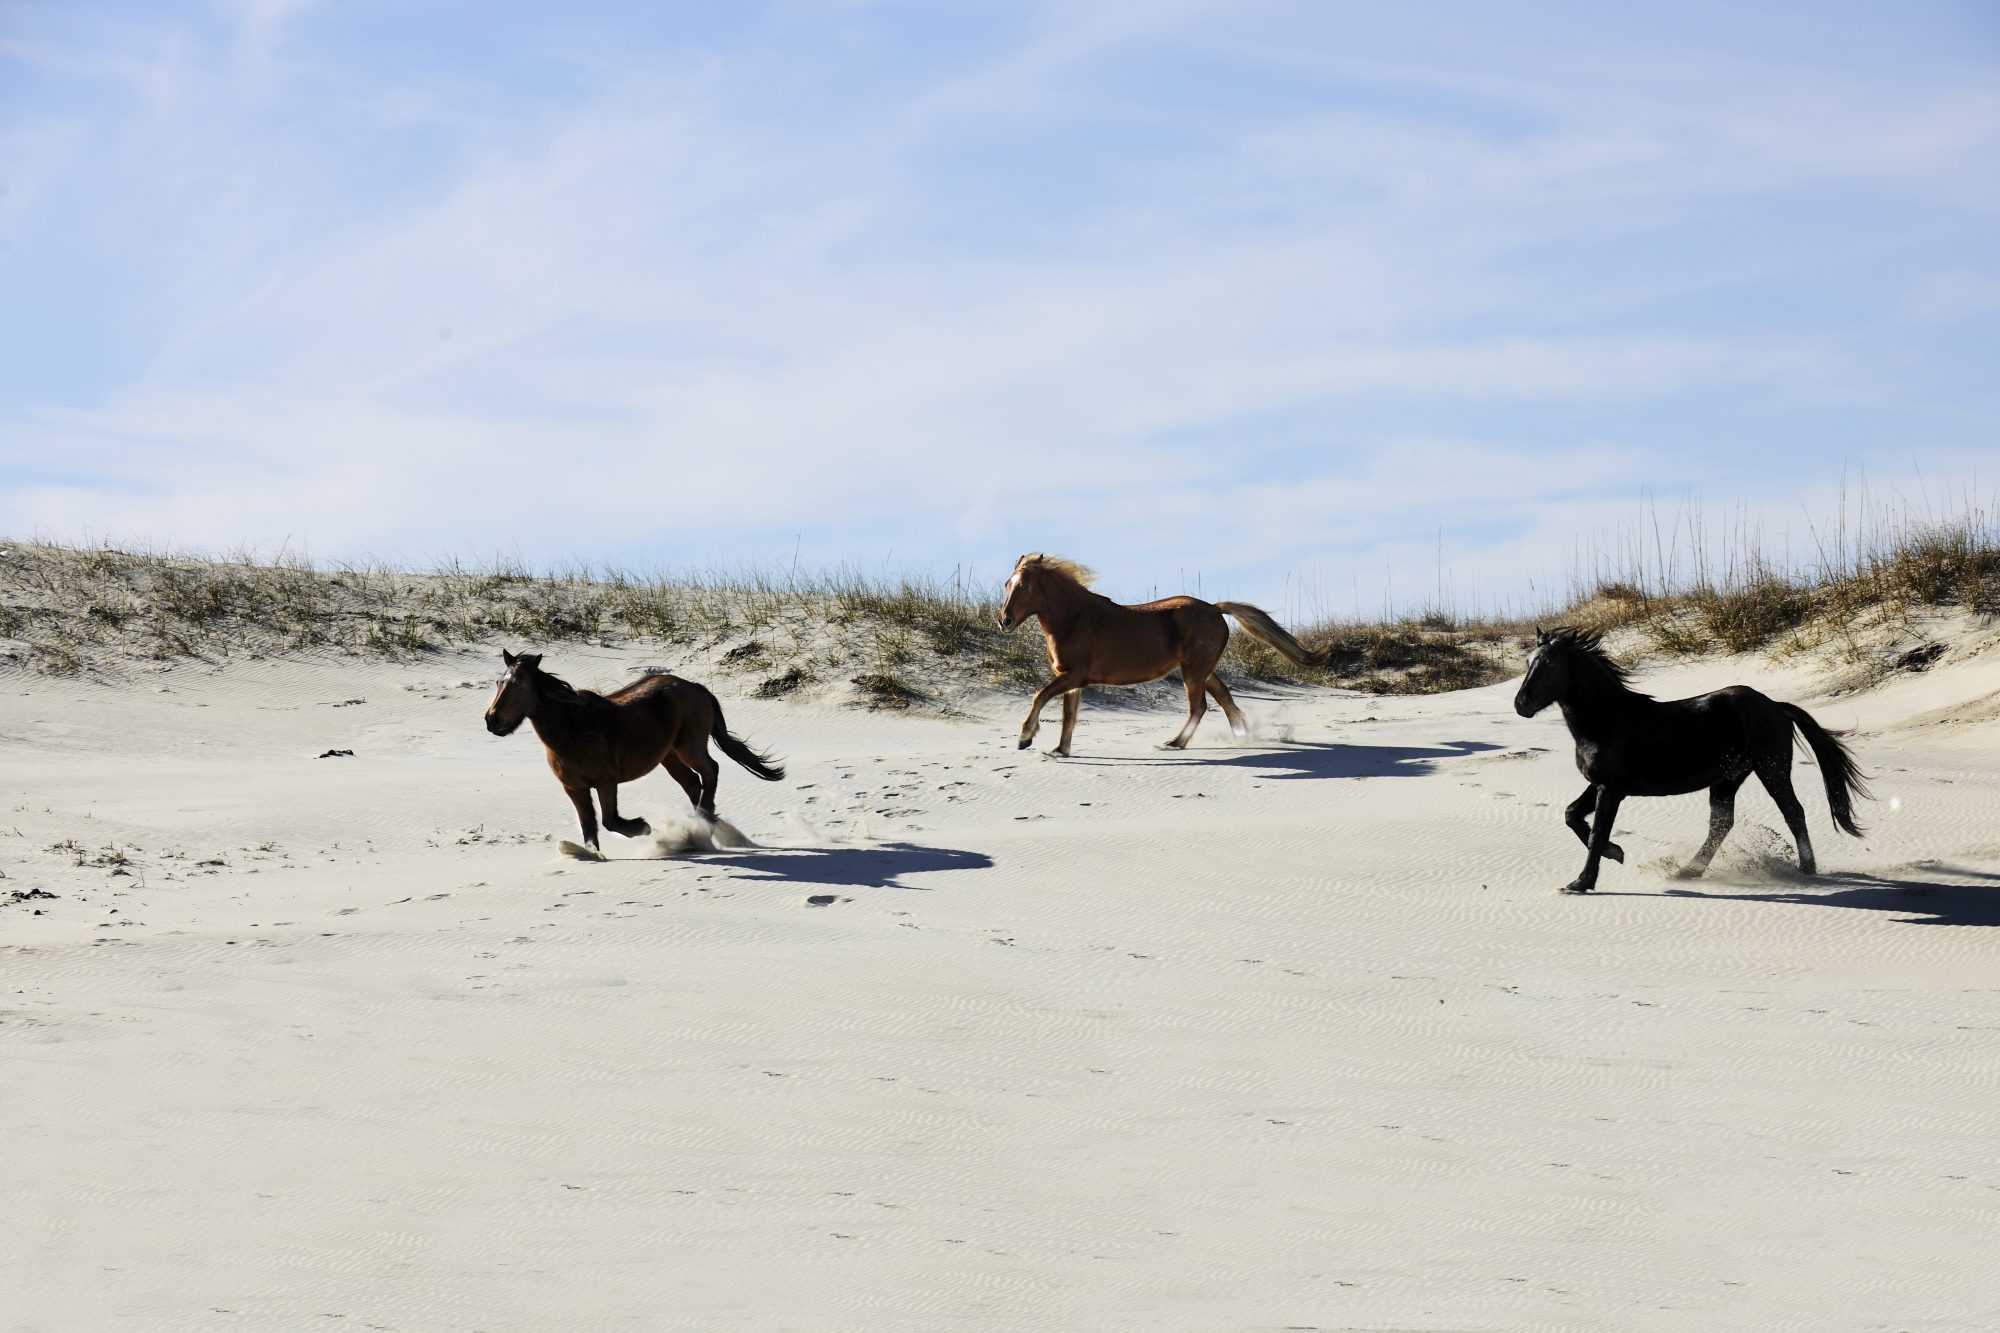 Alert! The Pony Patrol is Looking for Volunteers to Work with Wild Horses on the Outer Banks